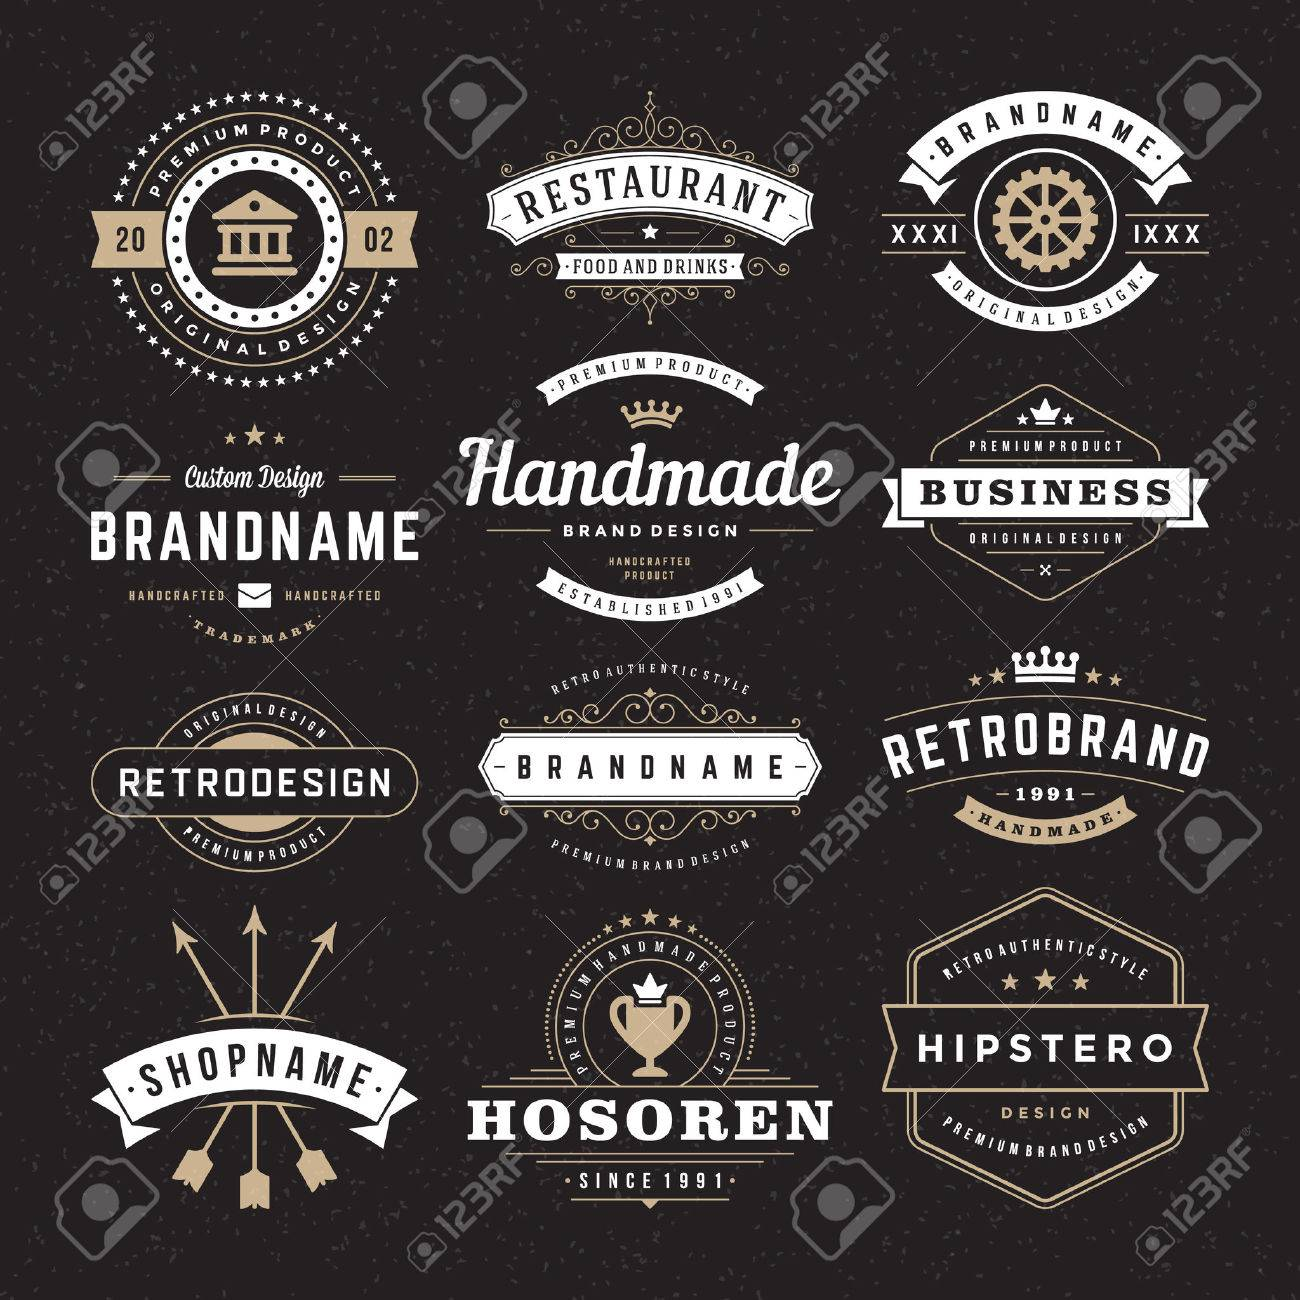 Retro Vintage Insignias or Logotypes set. Vector design elements, business signs, logos, identity, labels, badges and objects. - 35123146